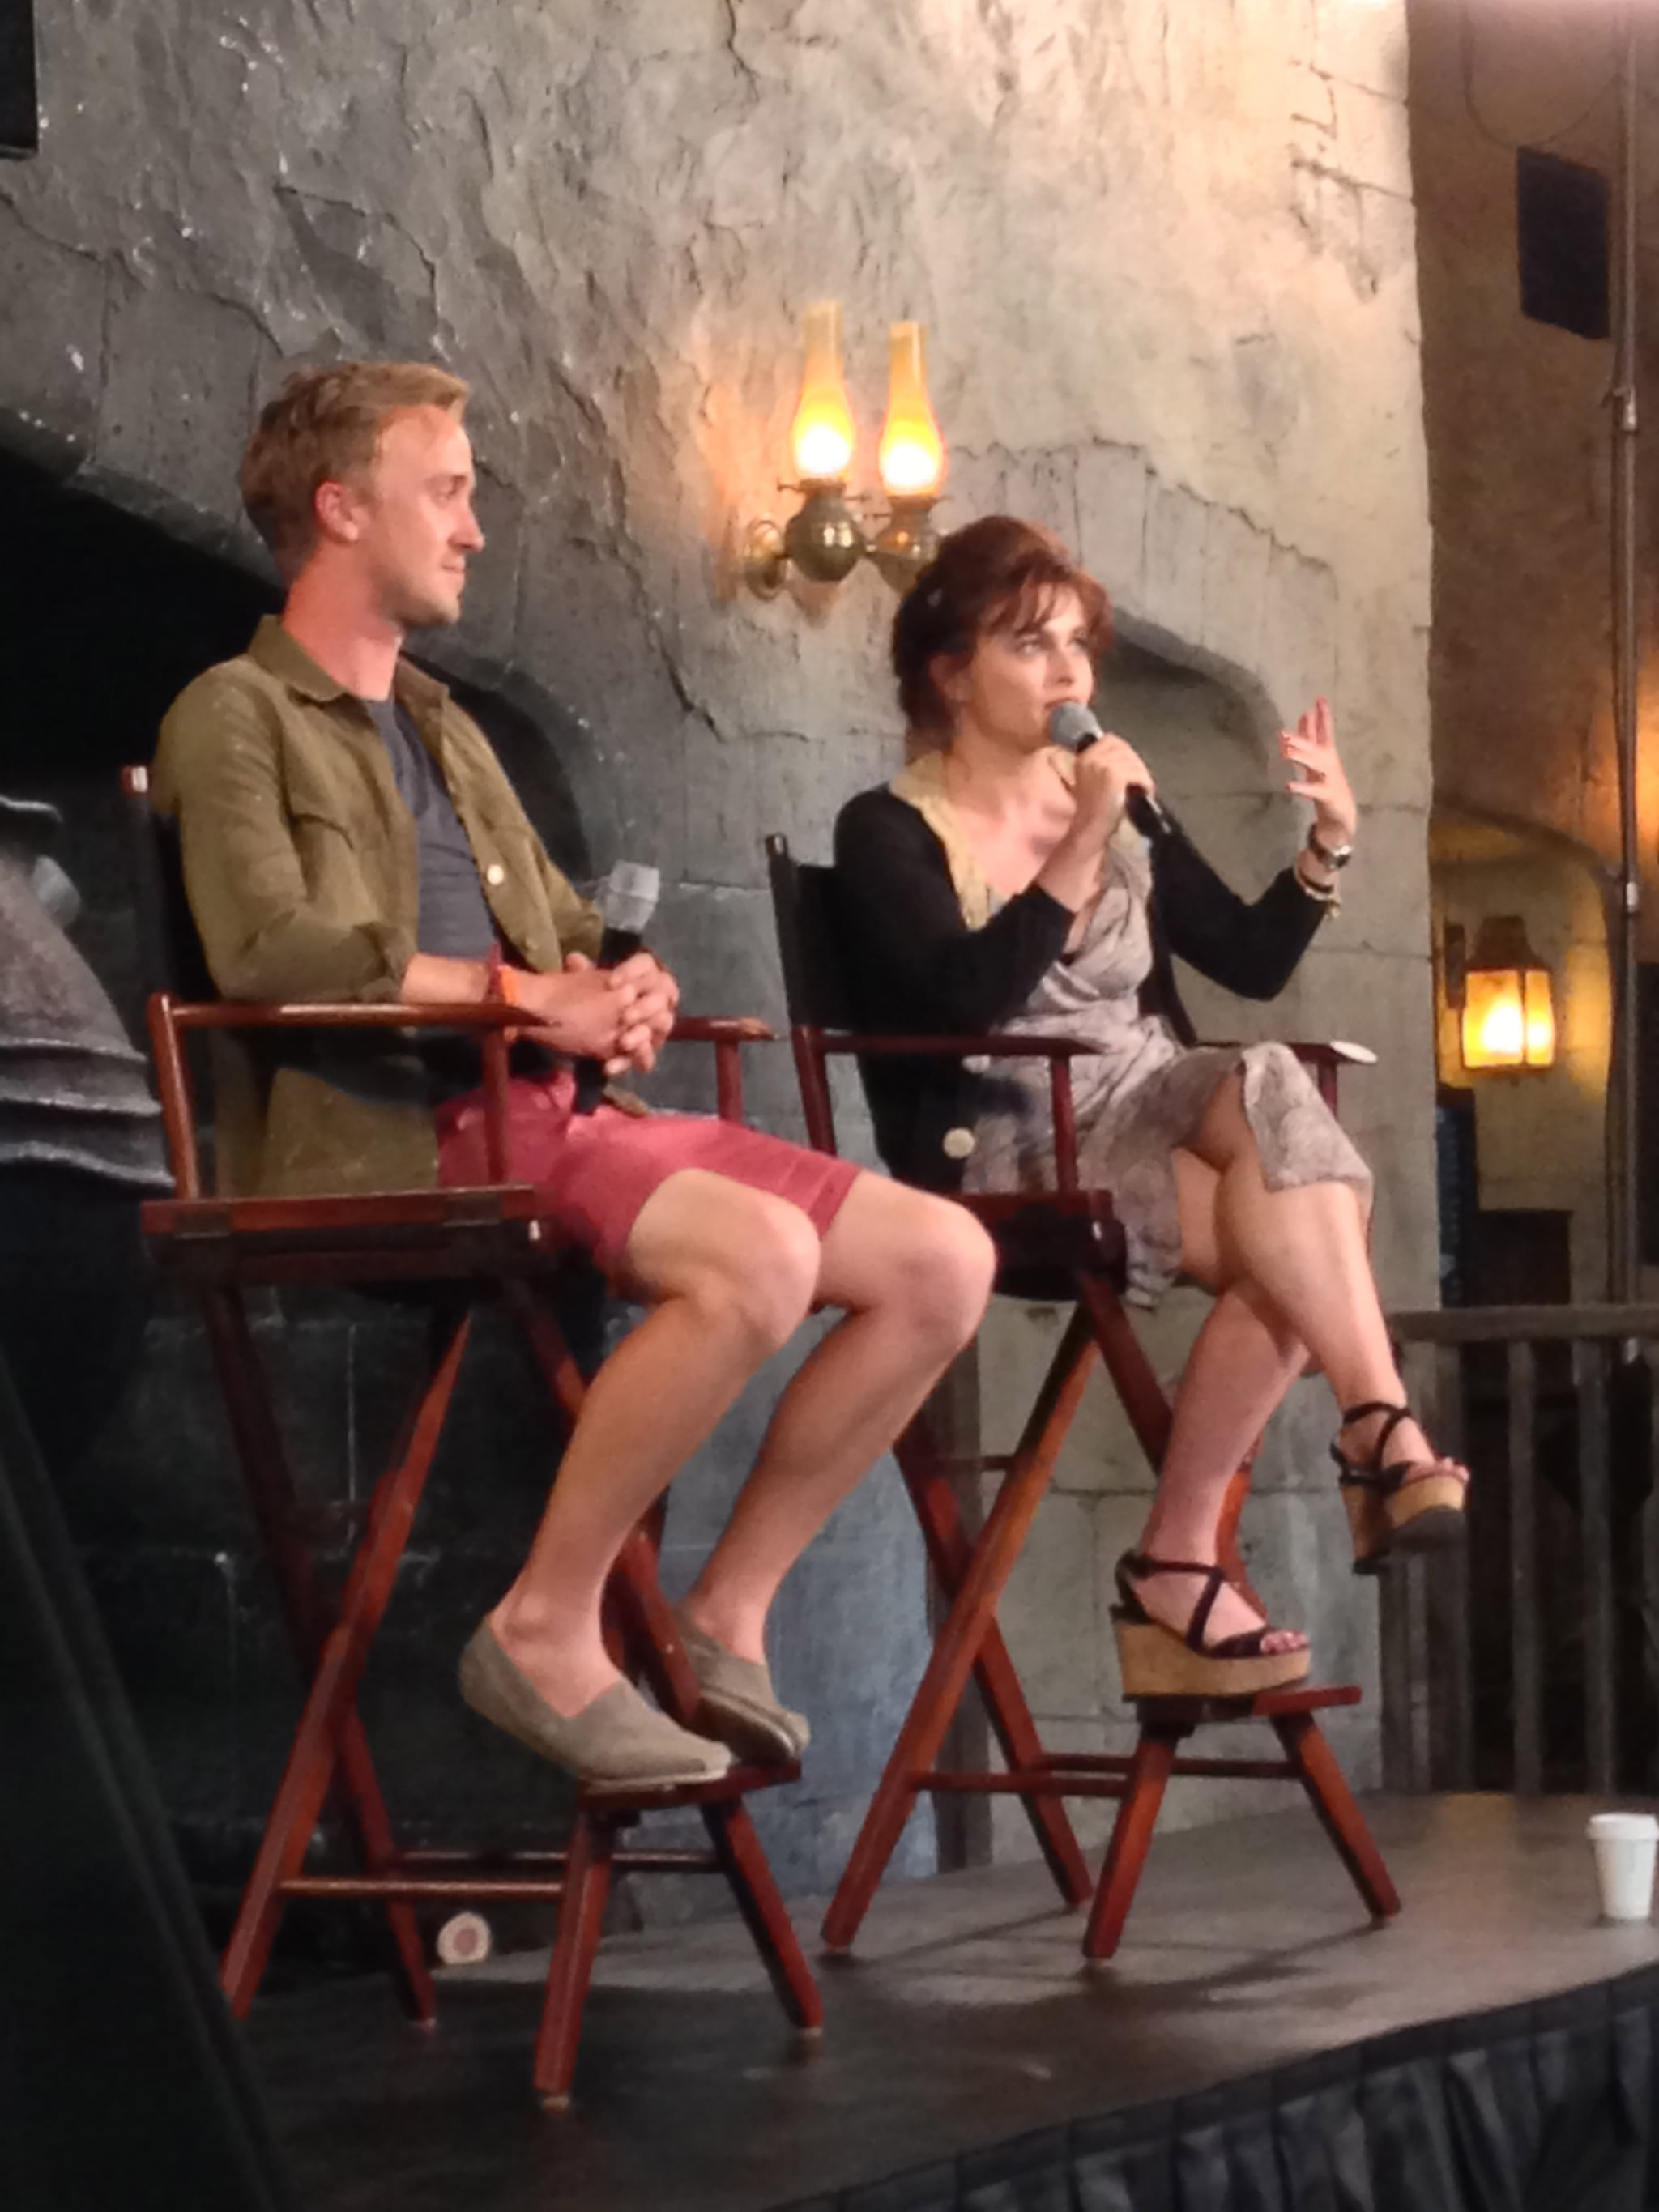 """Tom Felton and Helena Bonham Carter, who play villains Draco Malfoy and Bellatrix Lestrange, answered questions during a panel. The two are far from villainous in their real lives. In fact, Helena shared that her two children (with partner Tim Burton), Billy and Nell, were """"enchanted"""" with Diagon Alley. She added that Nell, who's 6, just started reading the first book."""